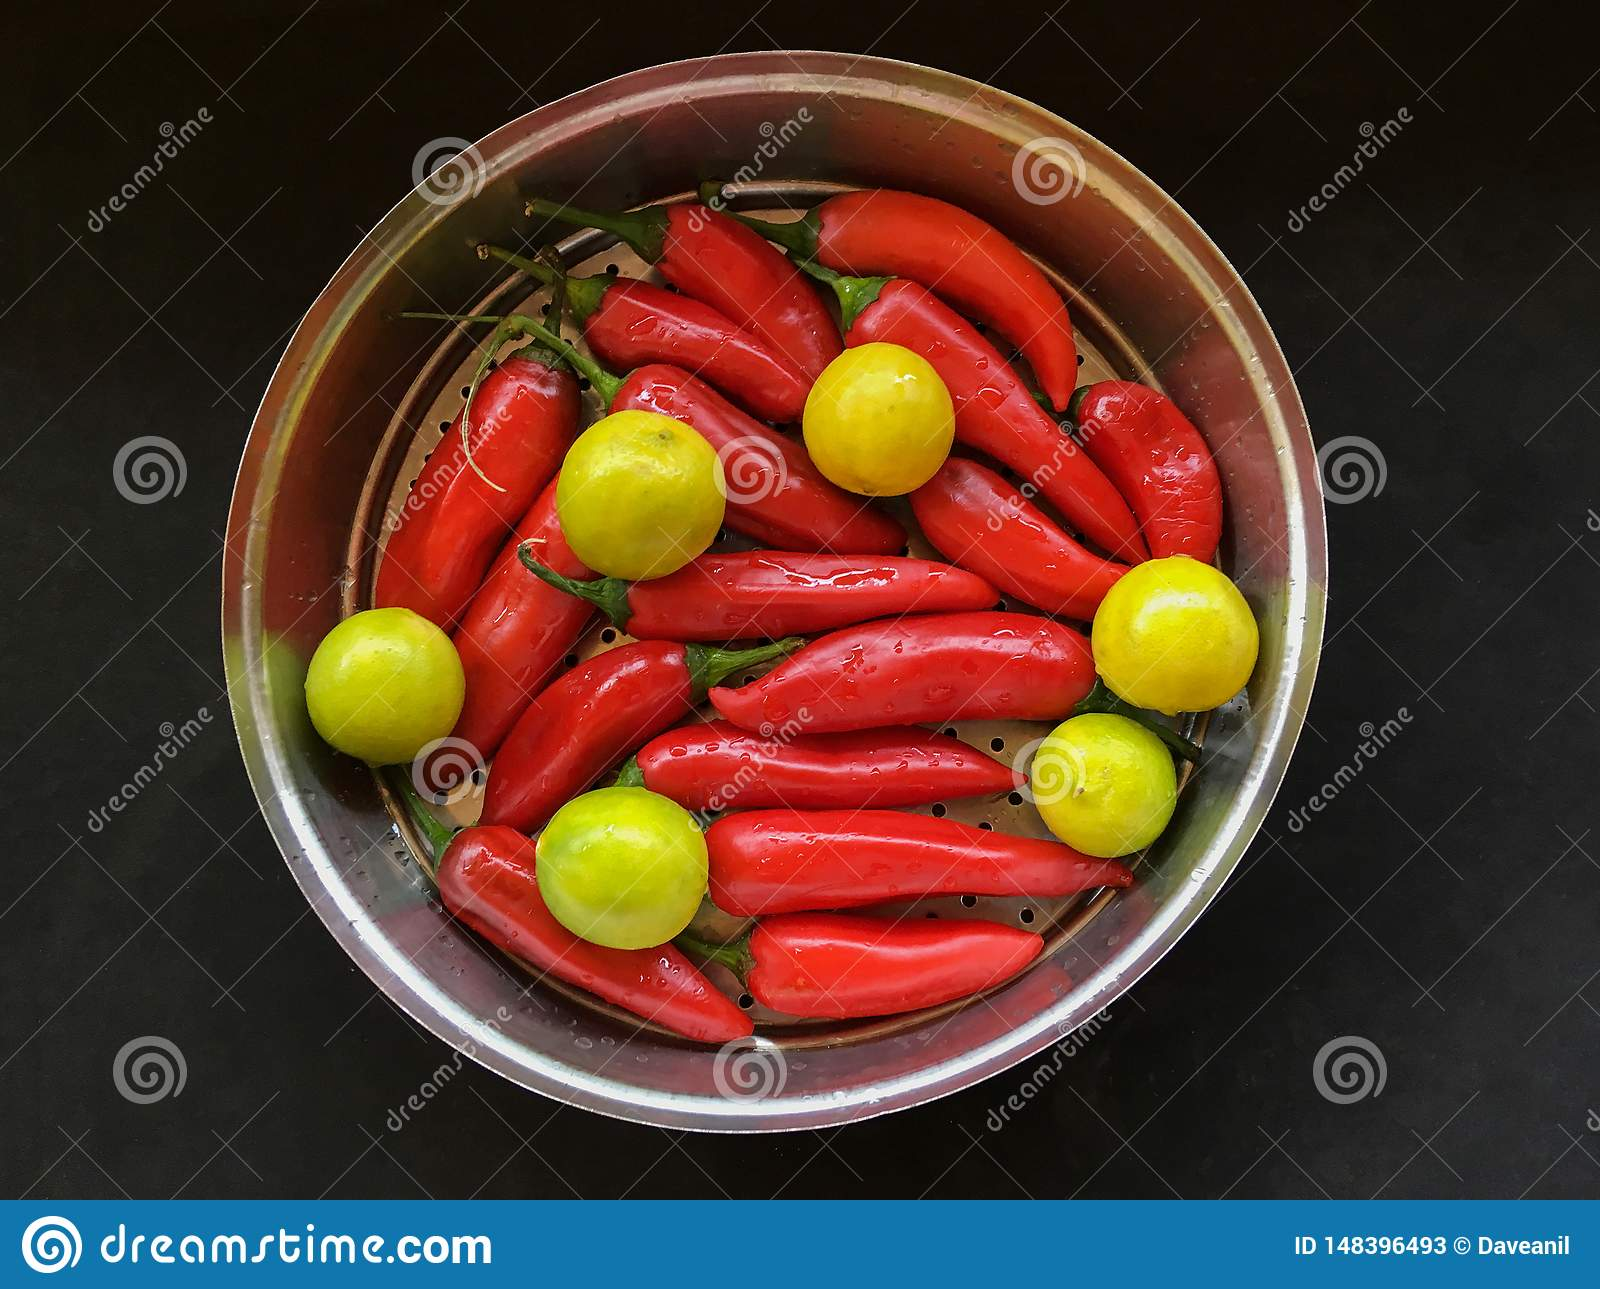 Red tabasco pepper and yellow lime for pickle kalyan maharashtra INDIA